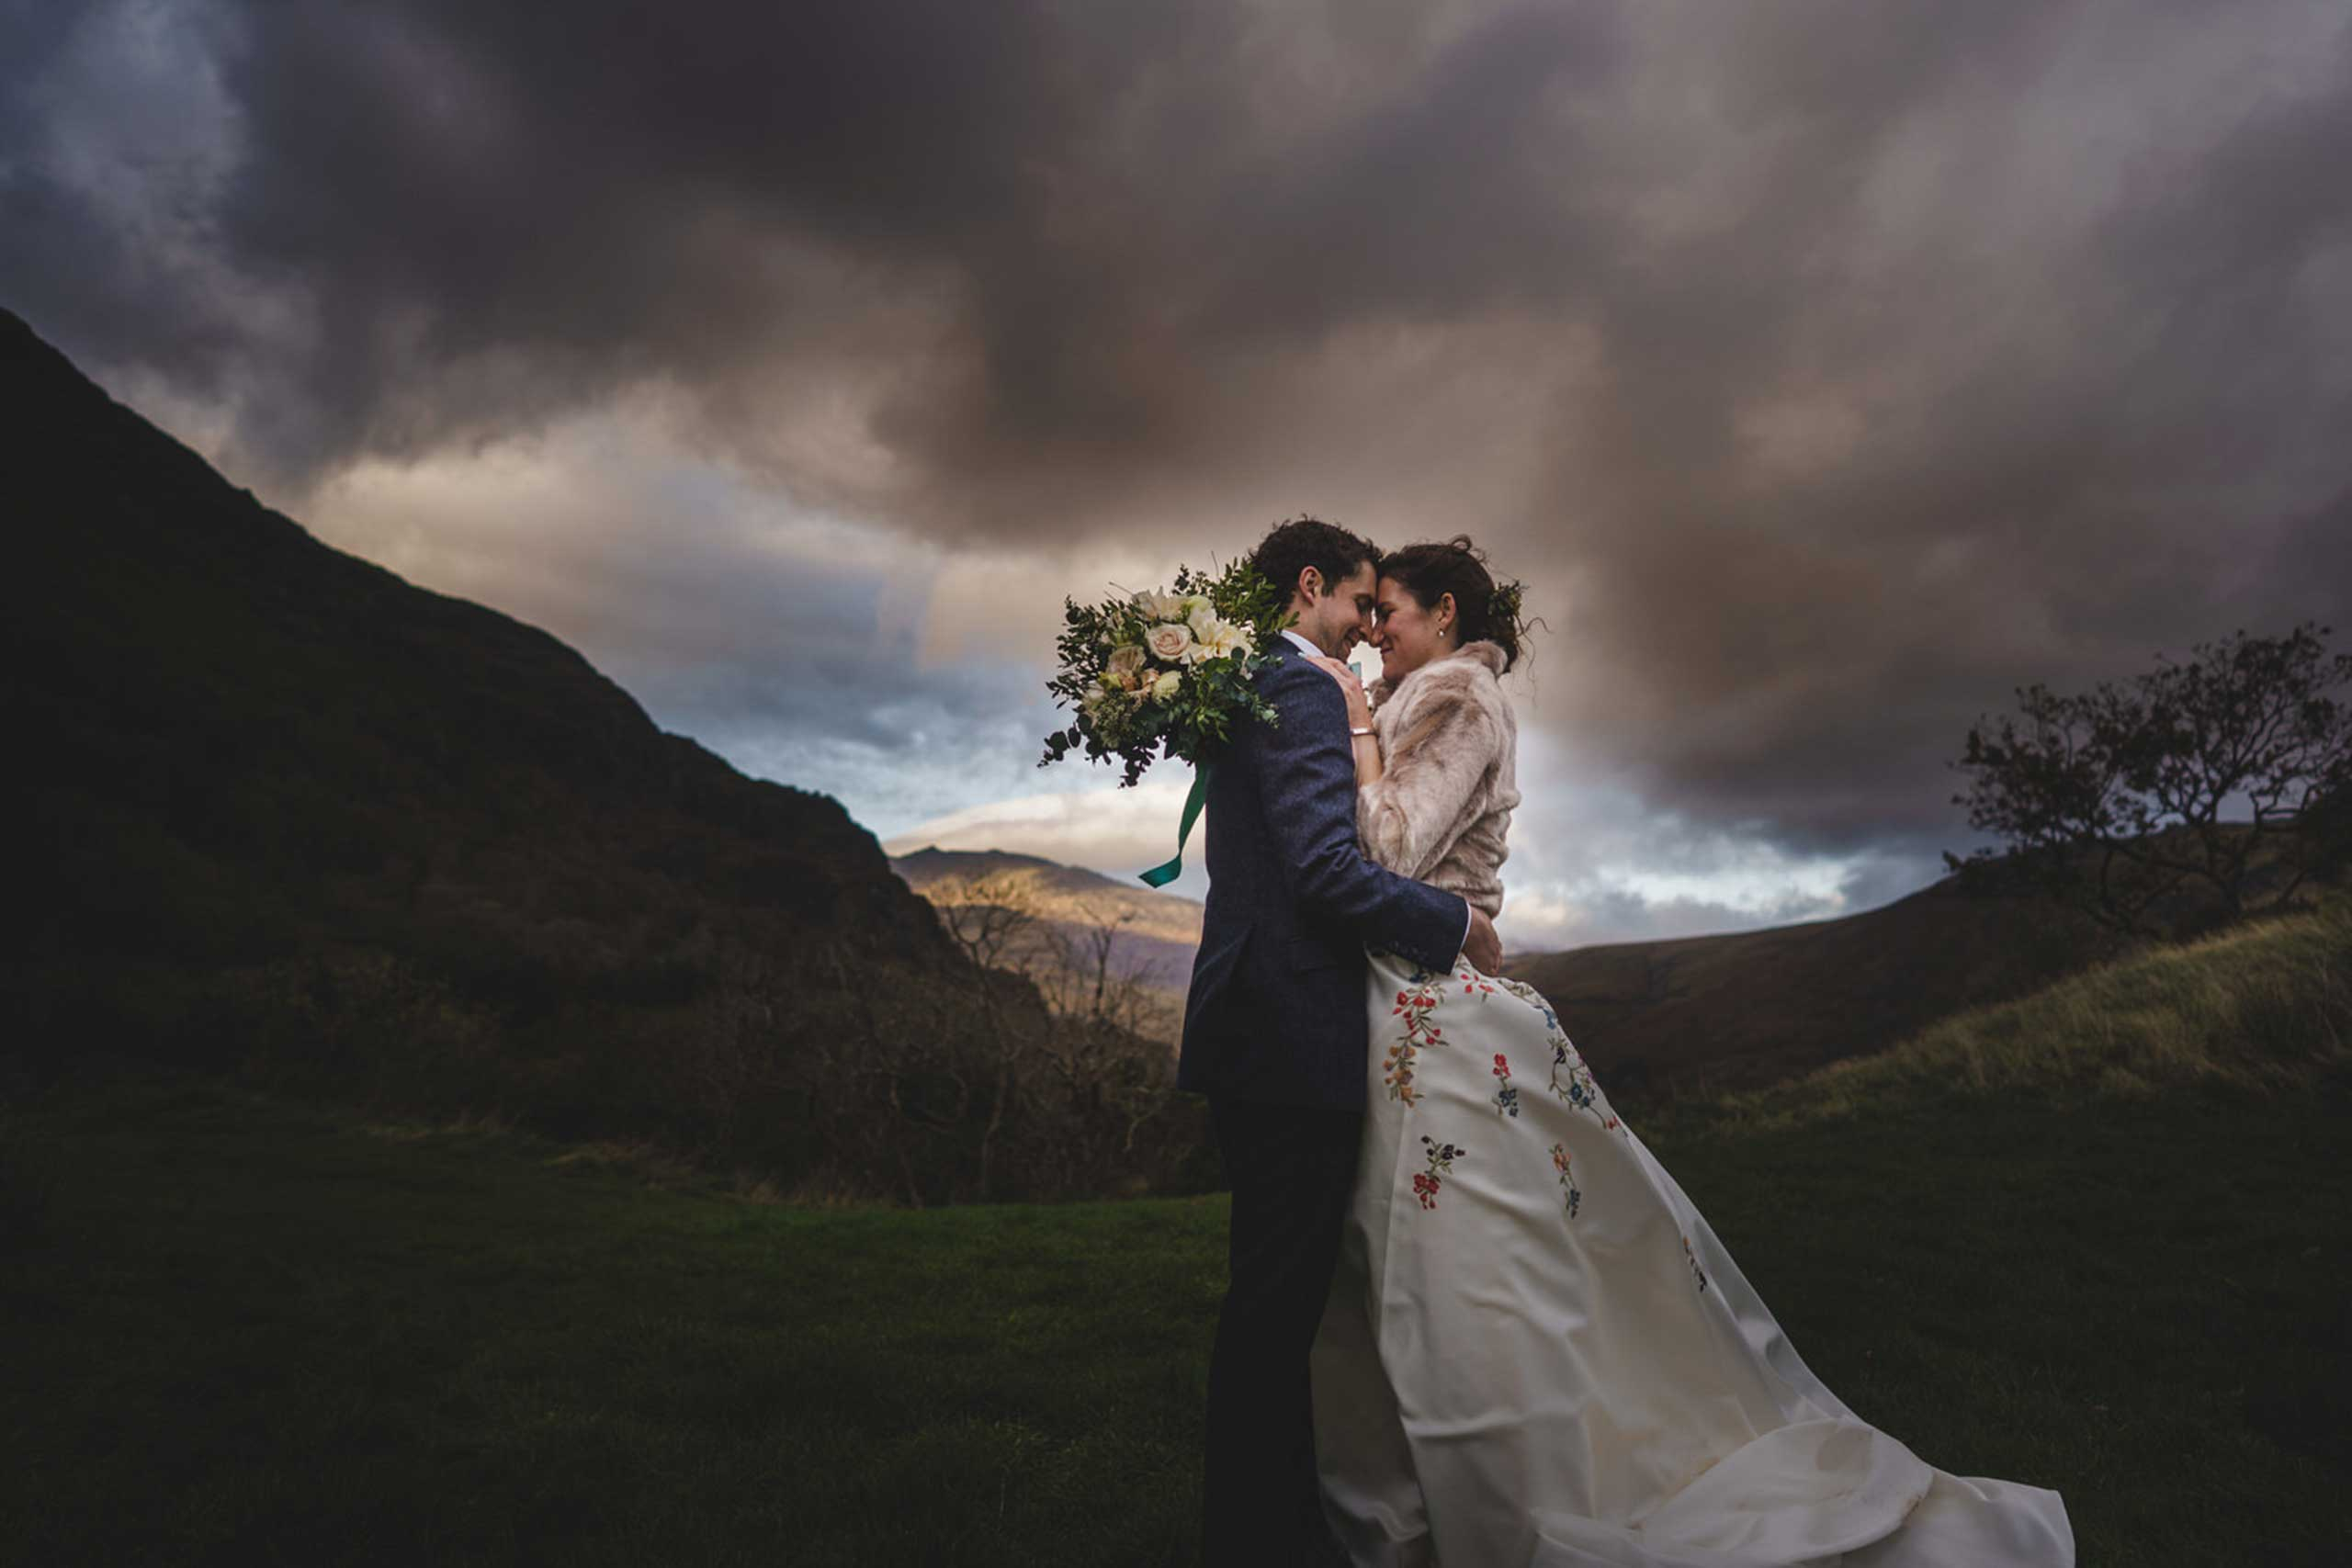 bride and groom amongst the hills with a stormy sky above at Llyn Gwynant